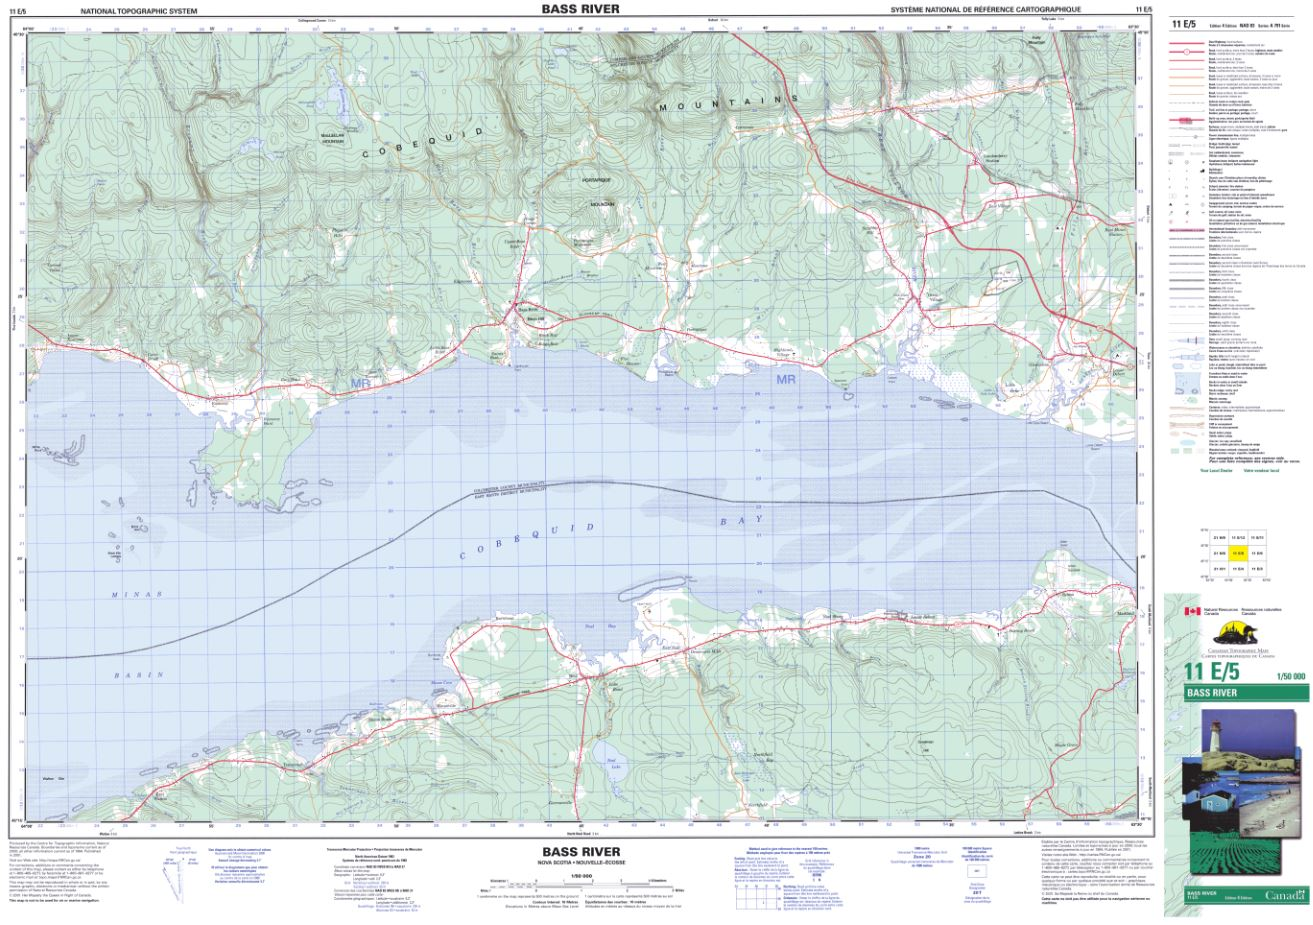 11E/05 Bass River Topographic Map Nova Scotia